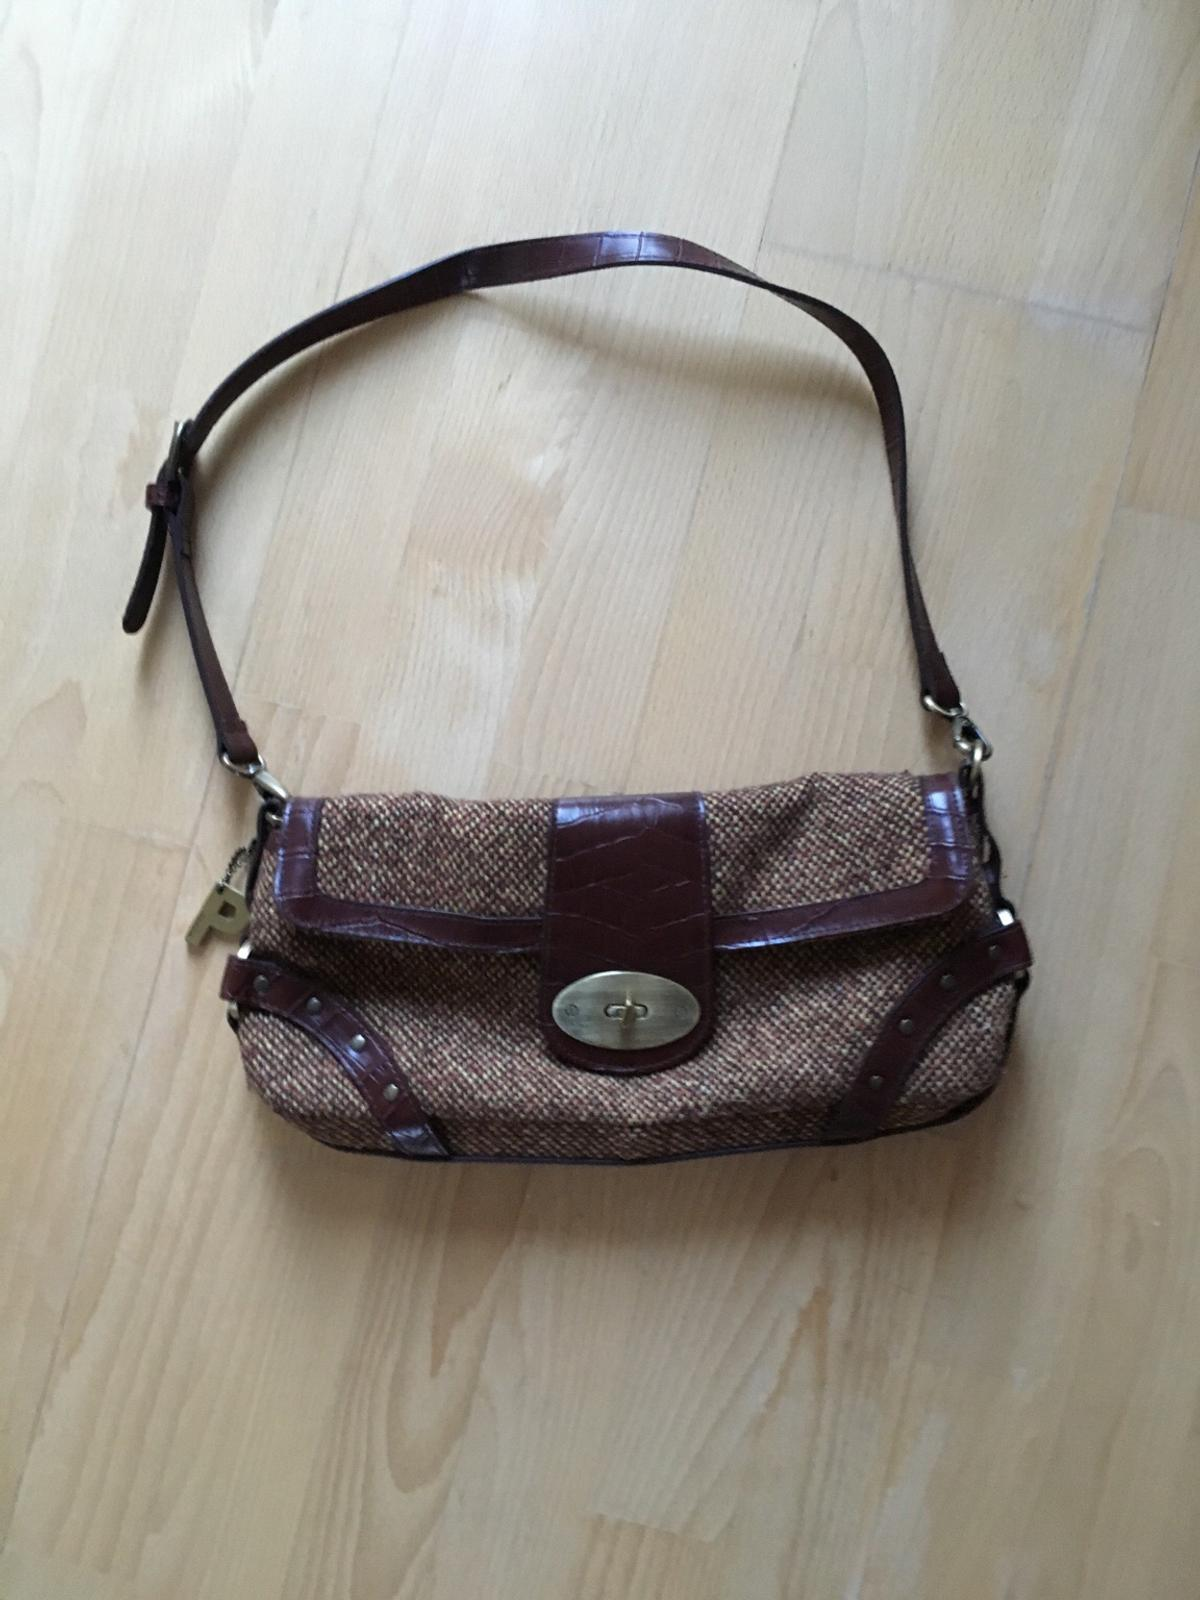 e7155d43967c3 Tasche von Picard in 30173 Hannover for €8.00 for sale - Shpock